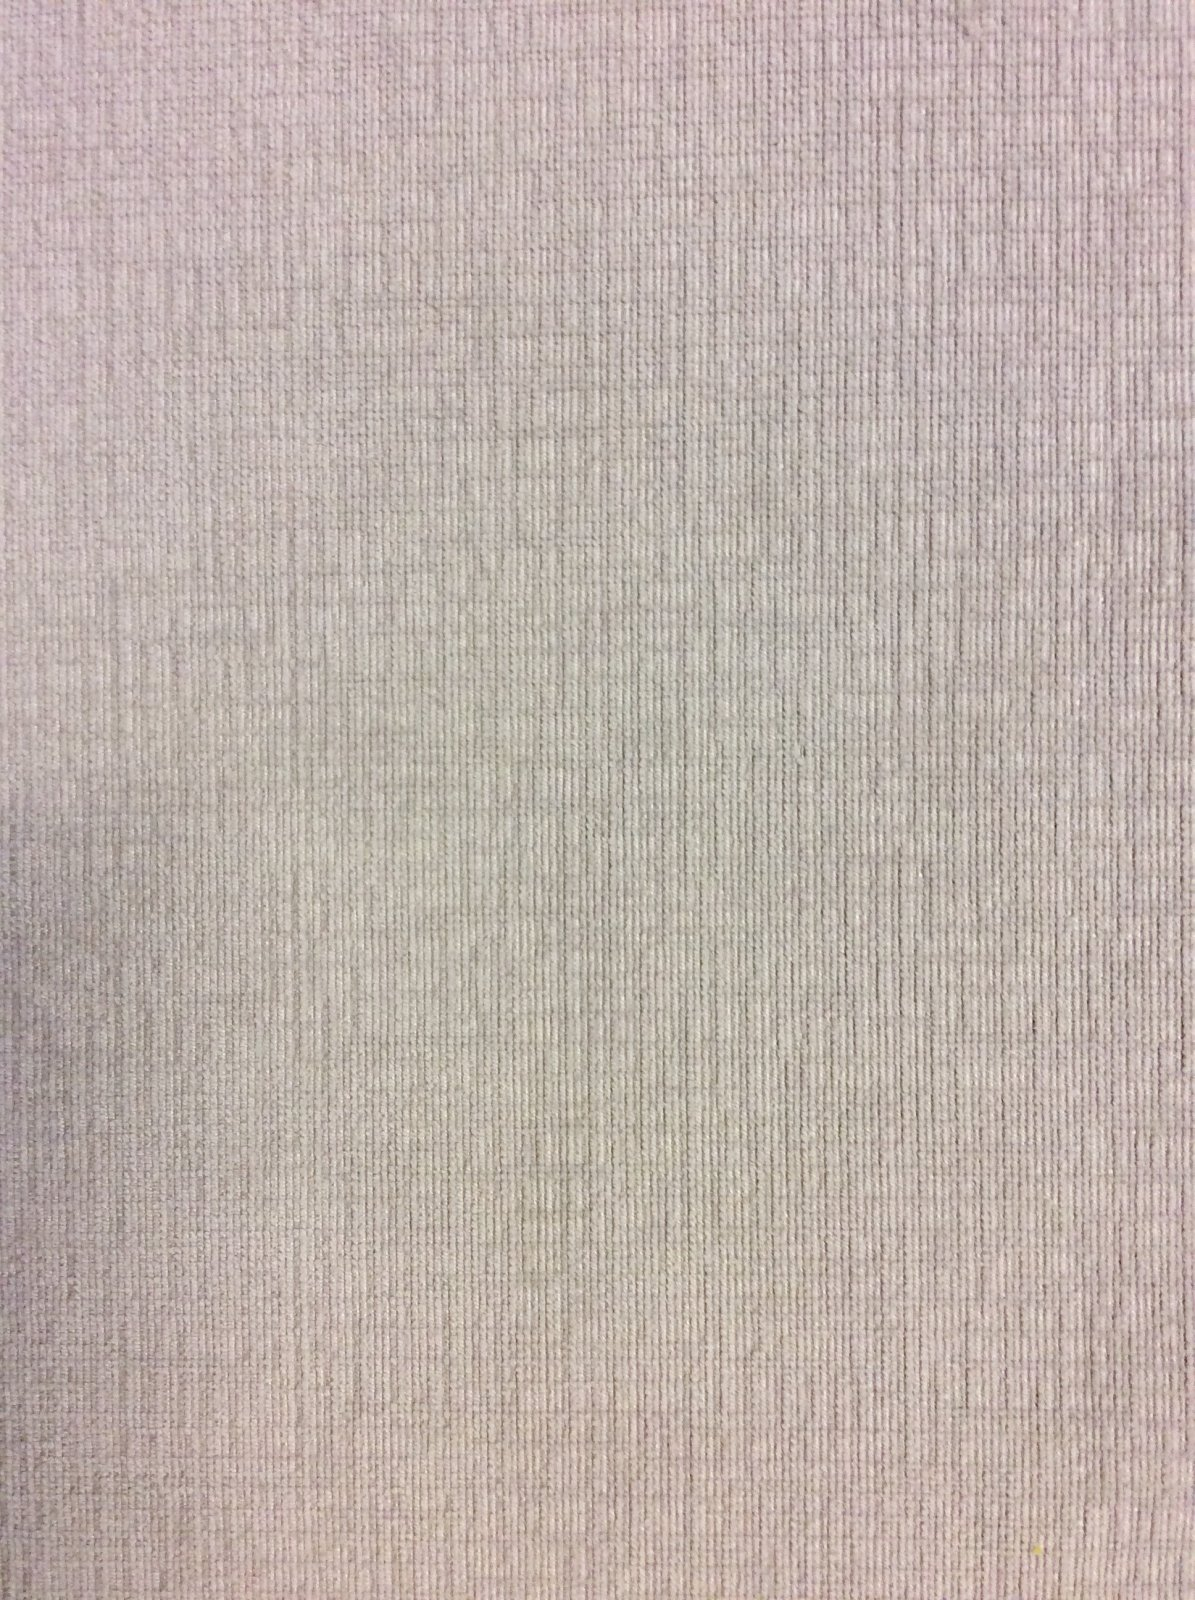 Hanson Dove Gray Microfiber Home Dec Upholstery Weight  Drapery Weight LHD121